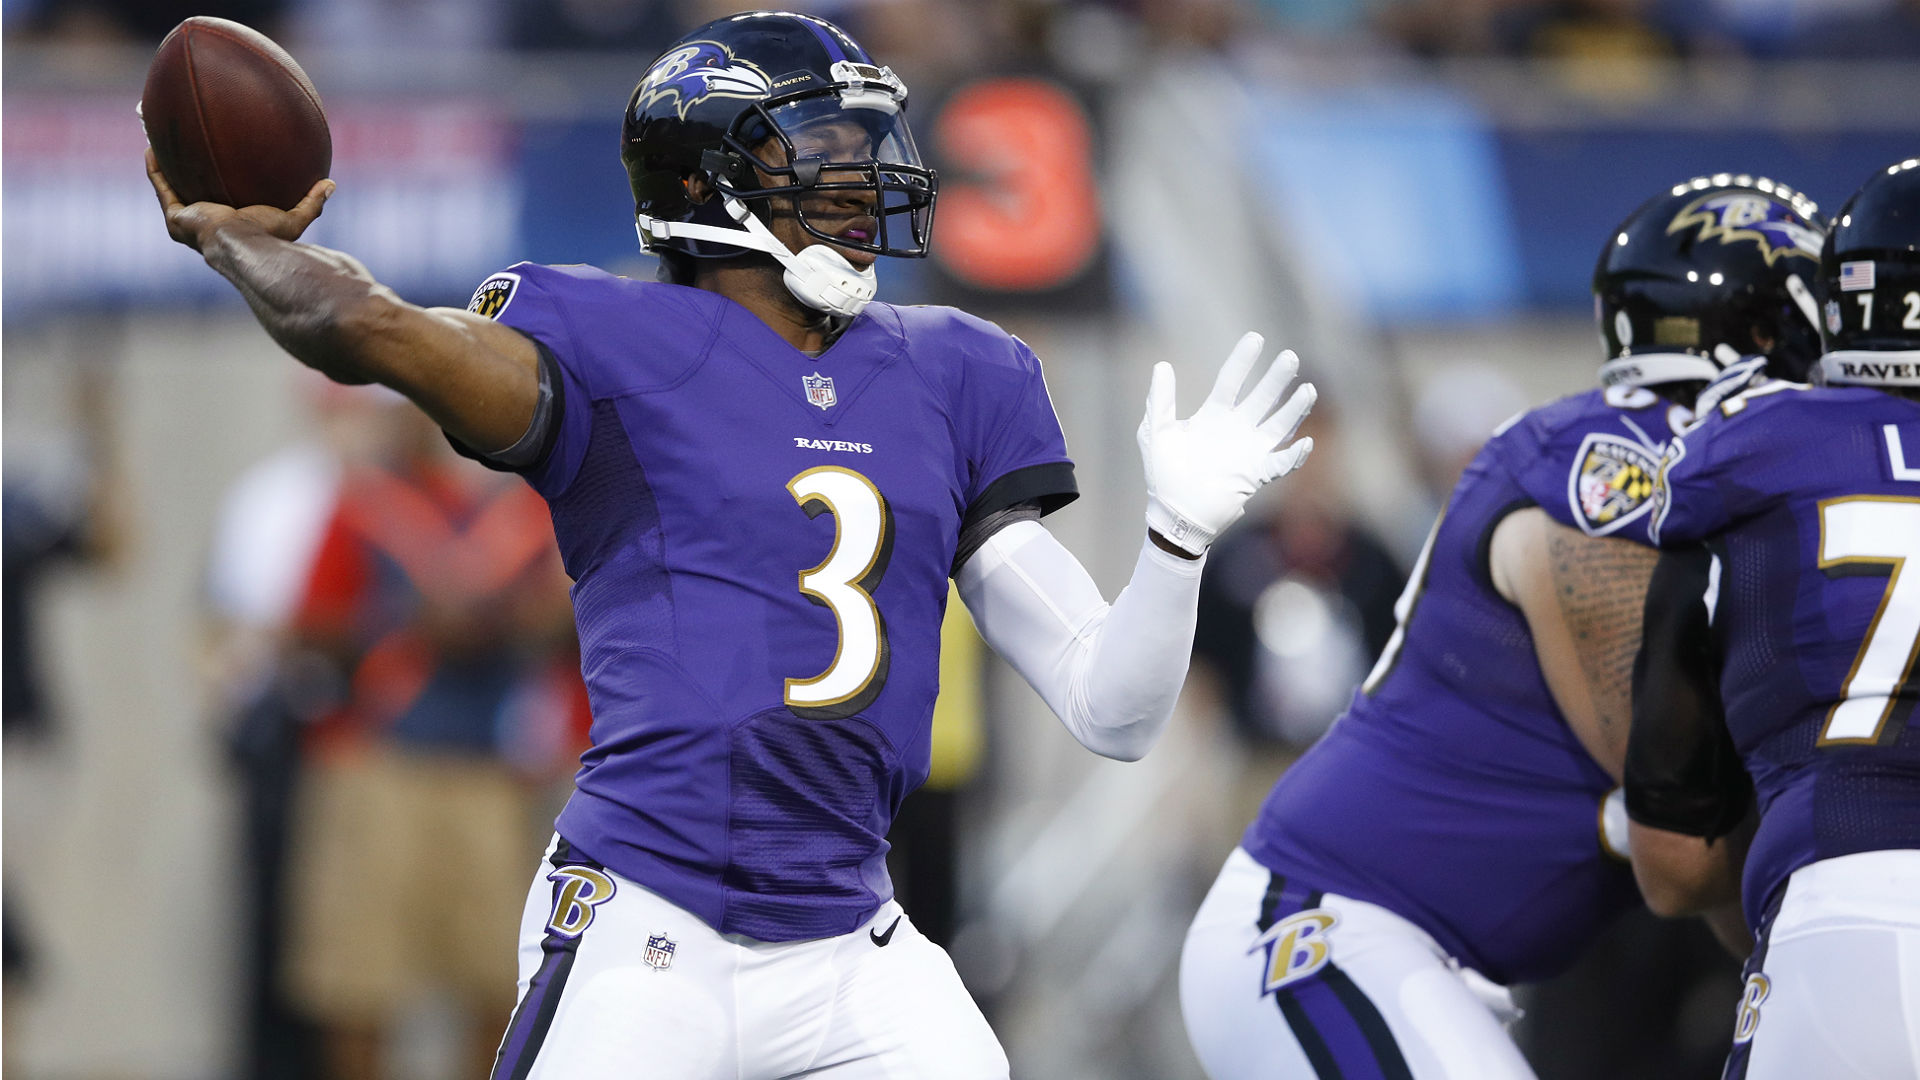 Ravens hold on to quarterback Robert Griffin III, report says